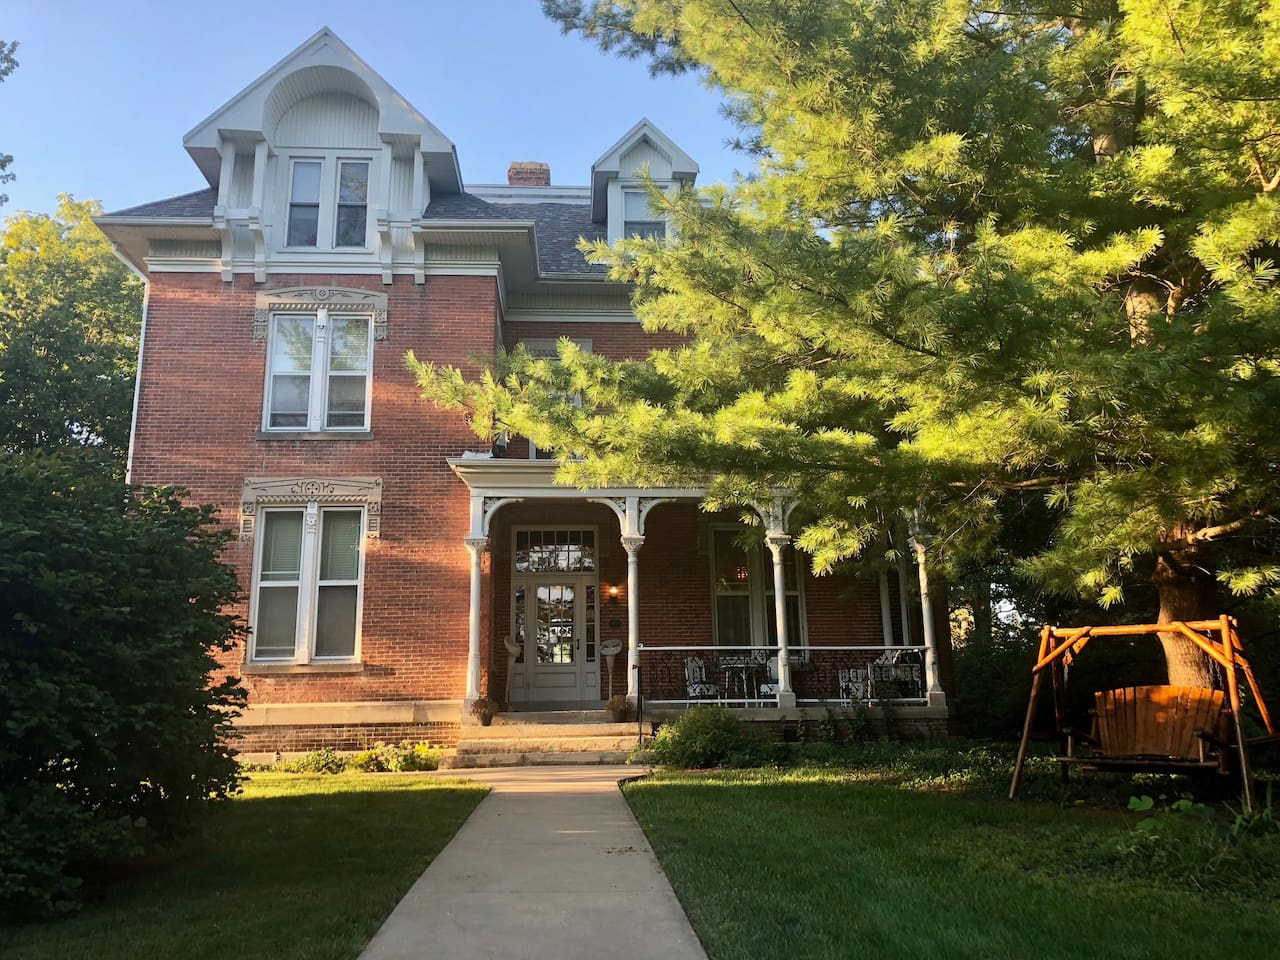 """External view of AyersMansionII - DeWolf Extended Suites, in """"mansion row"""" in historical, residential neighborhood of Jacksonville, Illinois."""